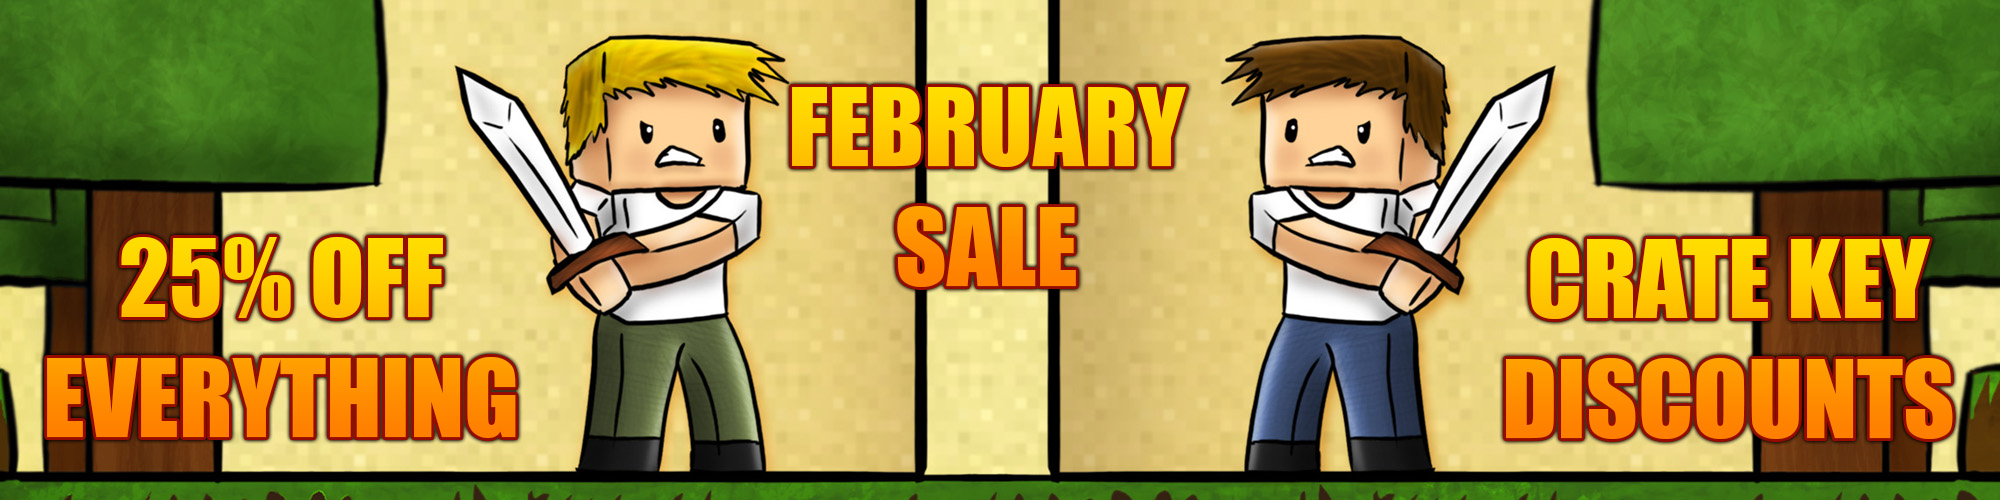 Up to 25% off in our February sale!